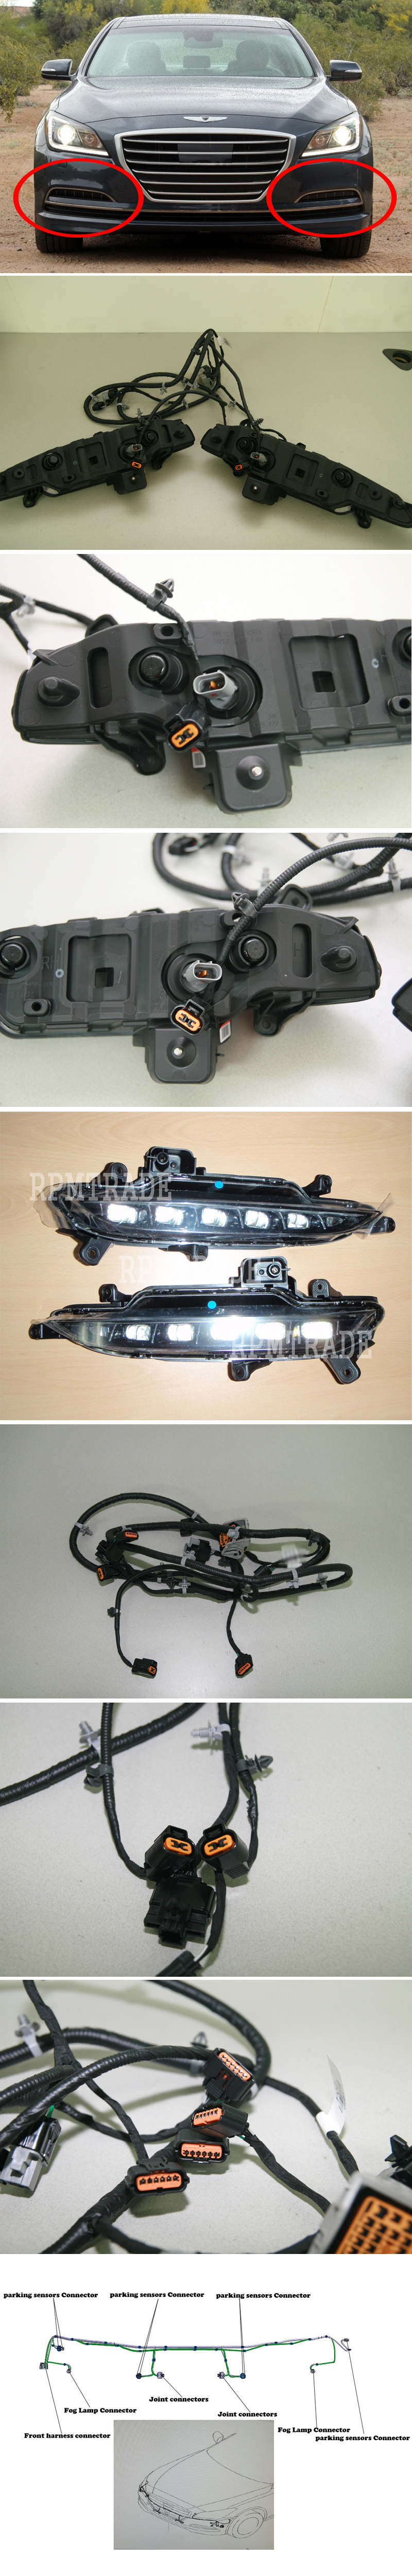 genuine oem led fog lamp wire harness set for 2015 2016 hyundai installation guide is not included